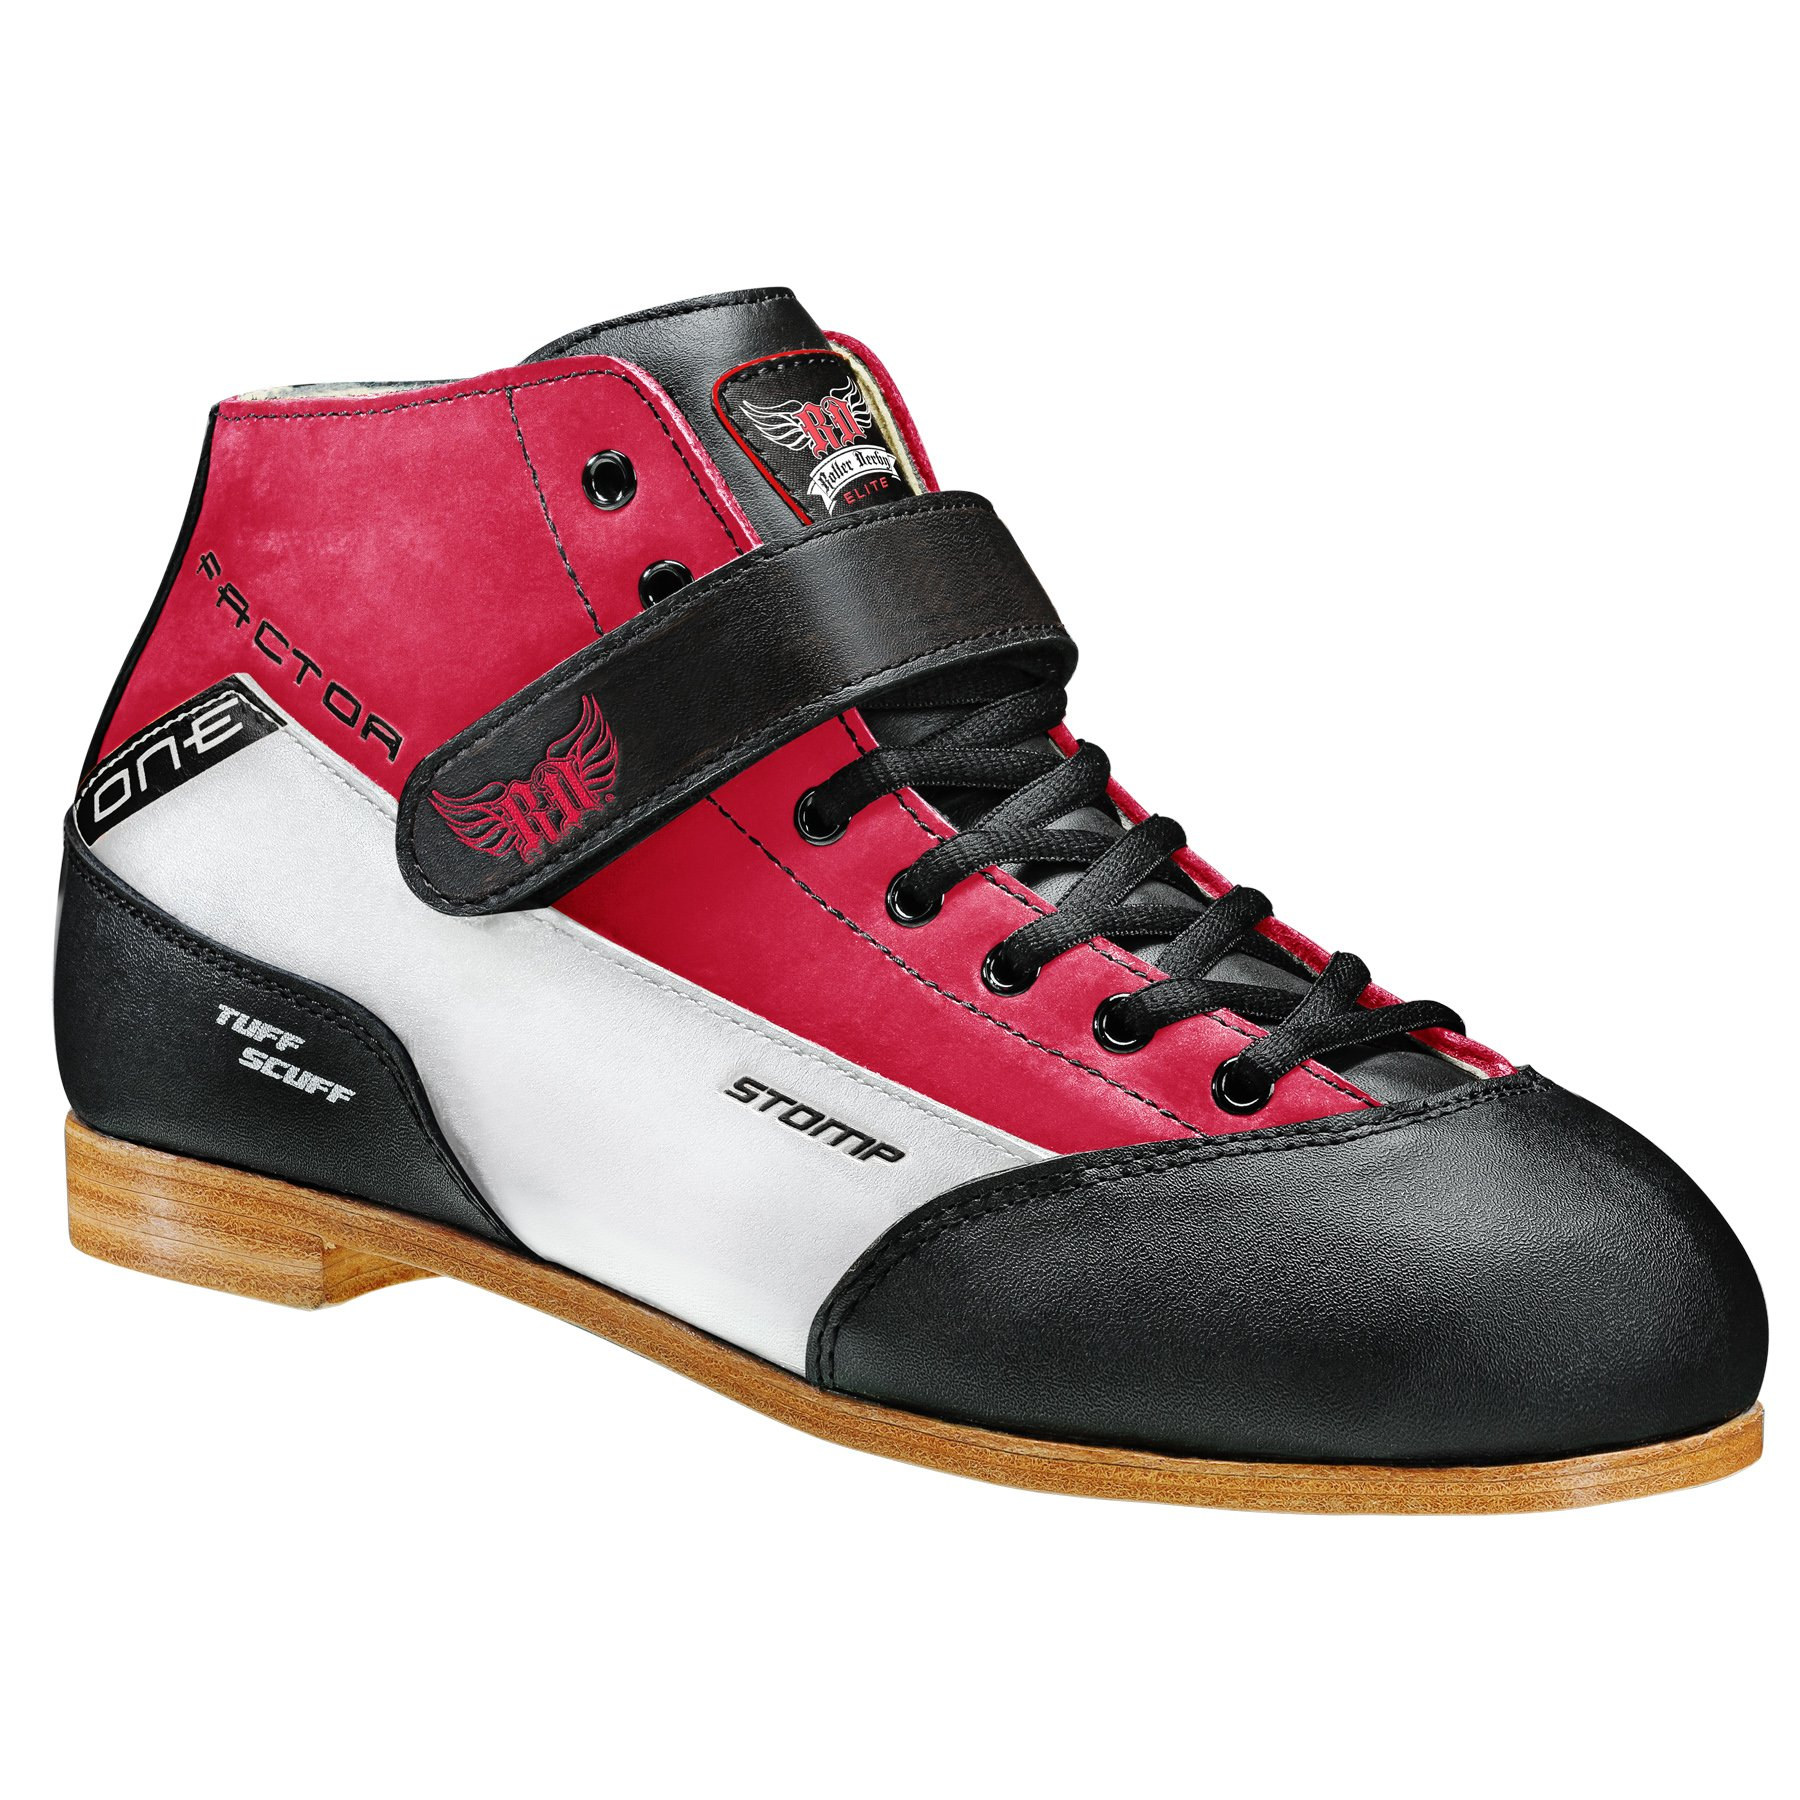 Stomp Factor-1 Derby Skate Boots colorRed size 11 by Roller Derby